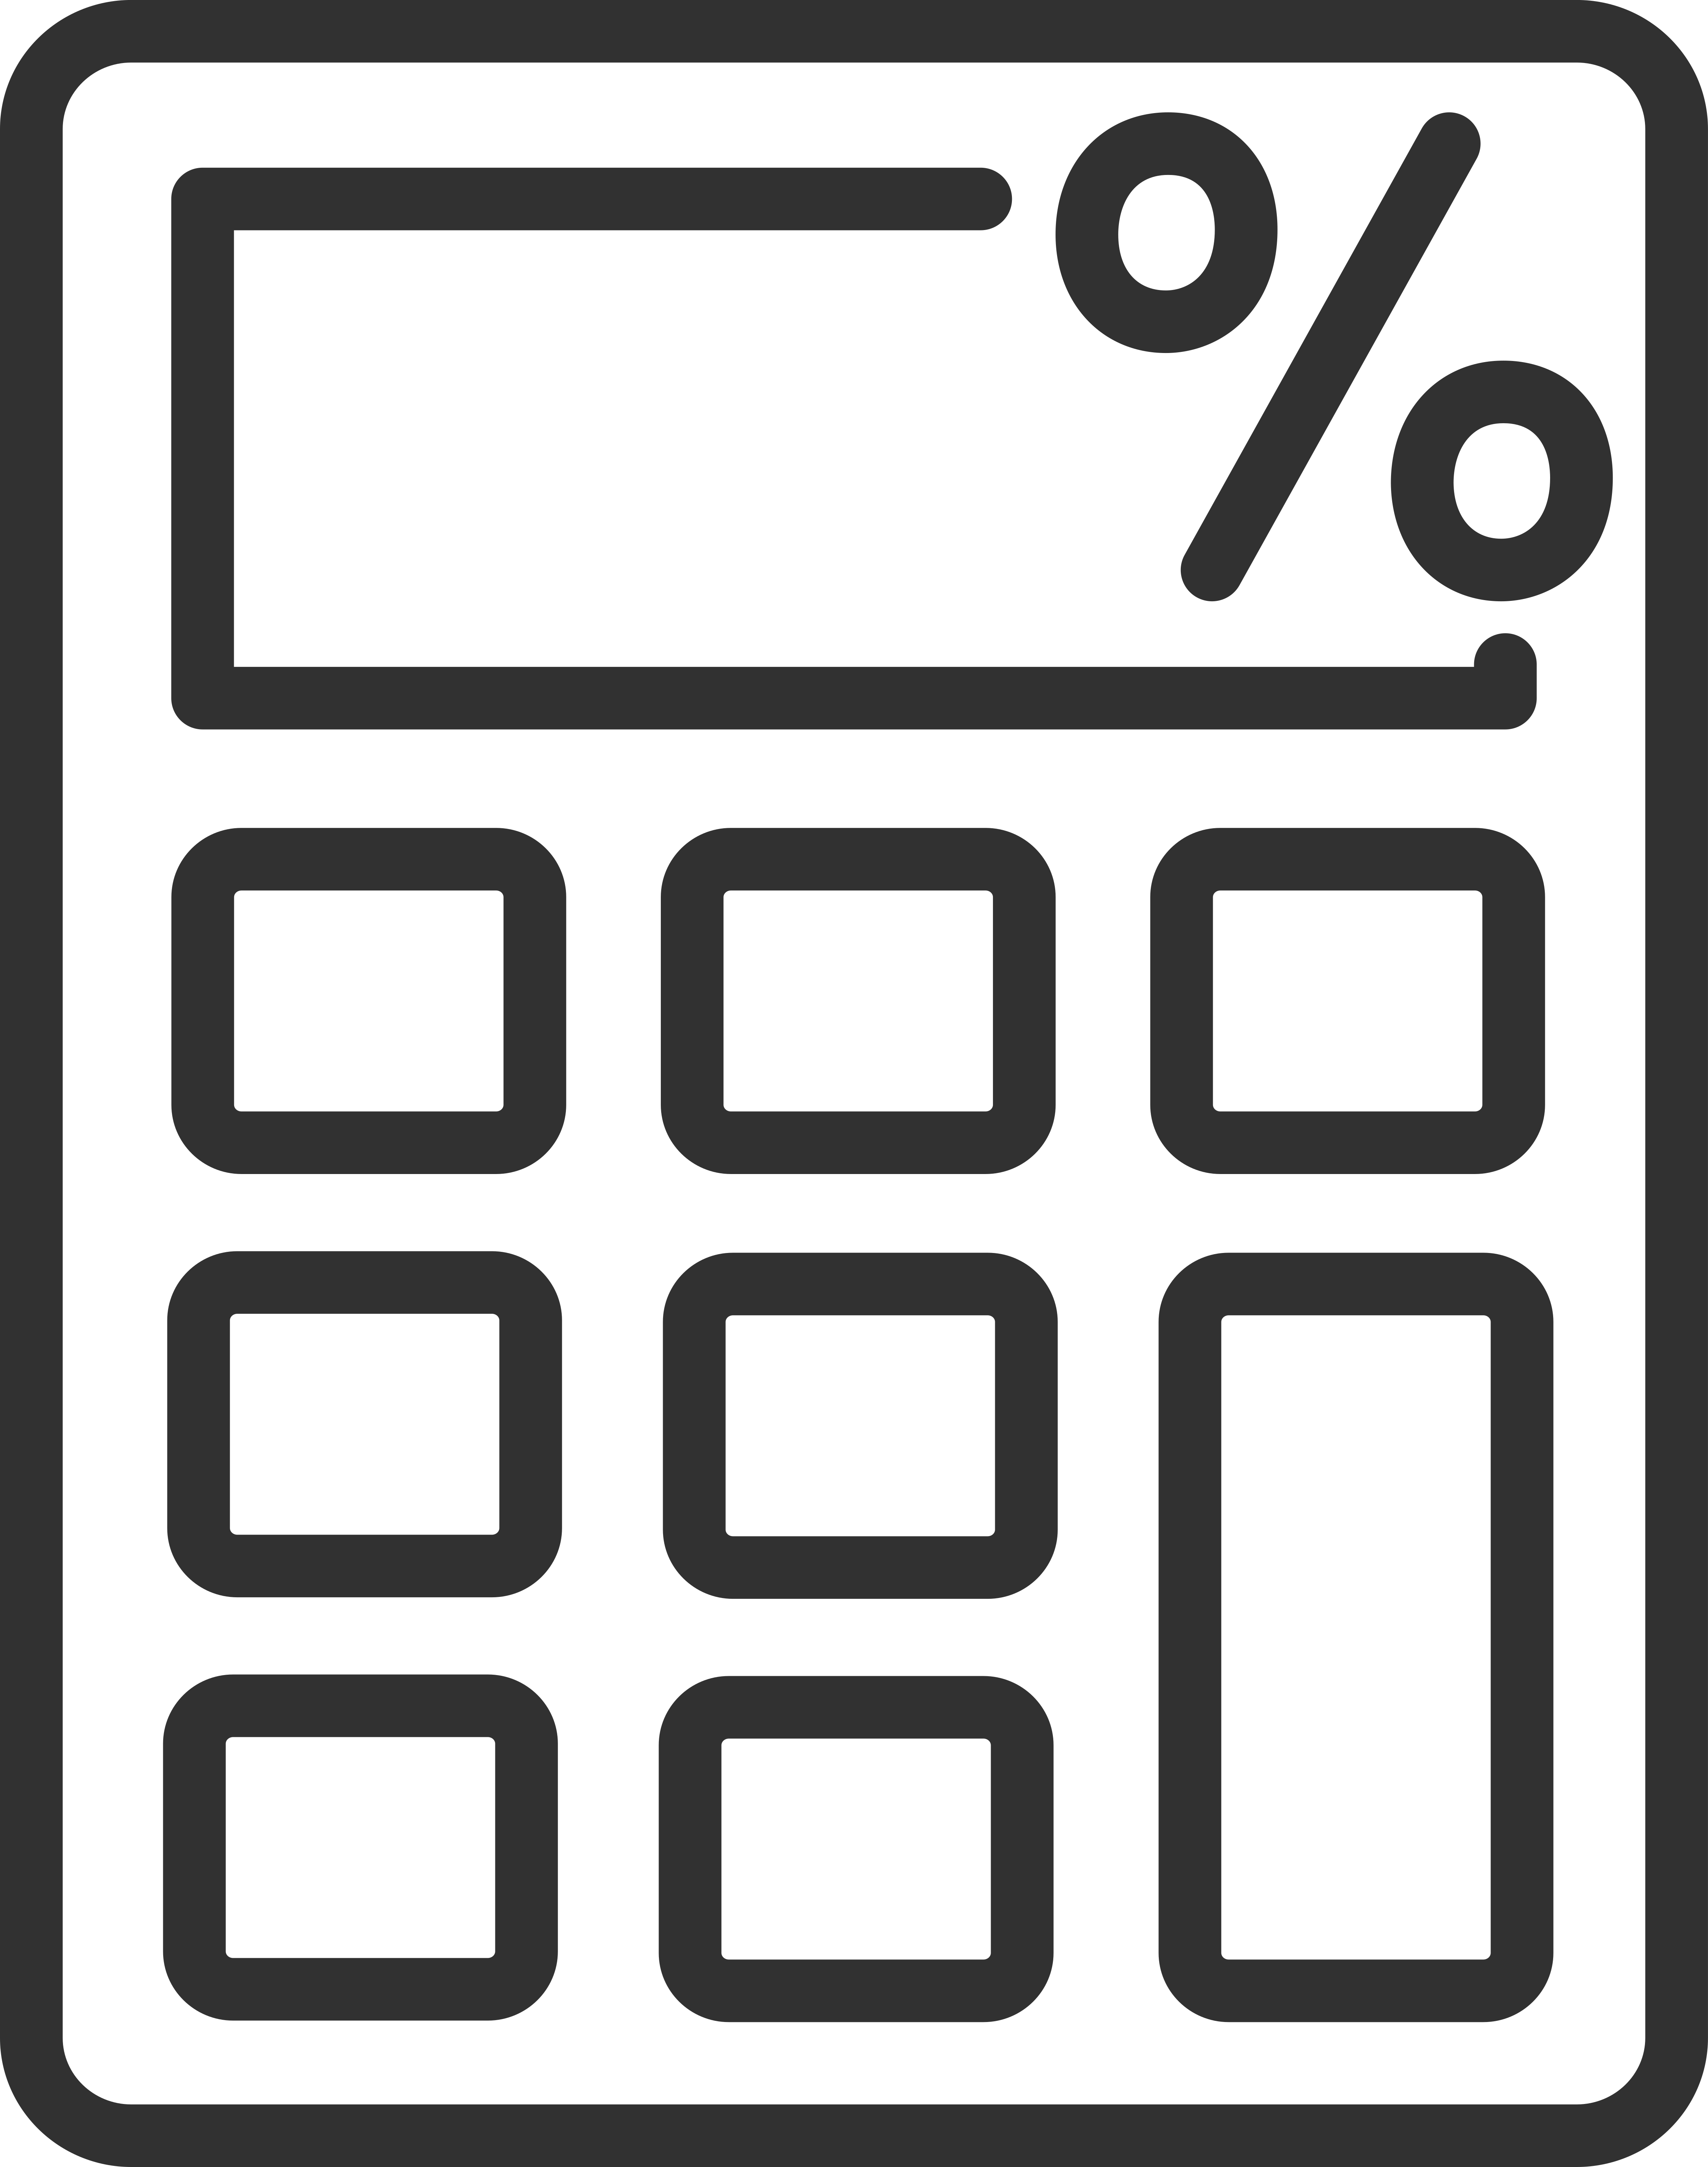 HD Calculator Icon Png , Free Unlimited Download #1931897.